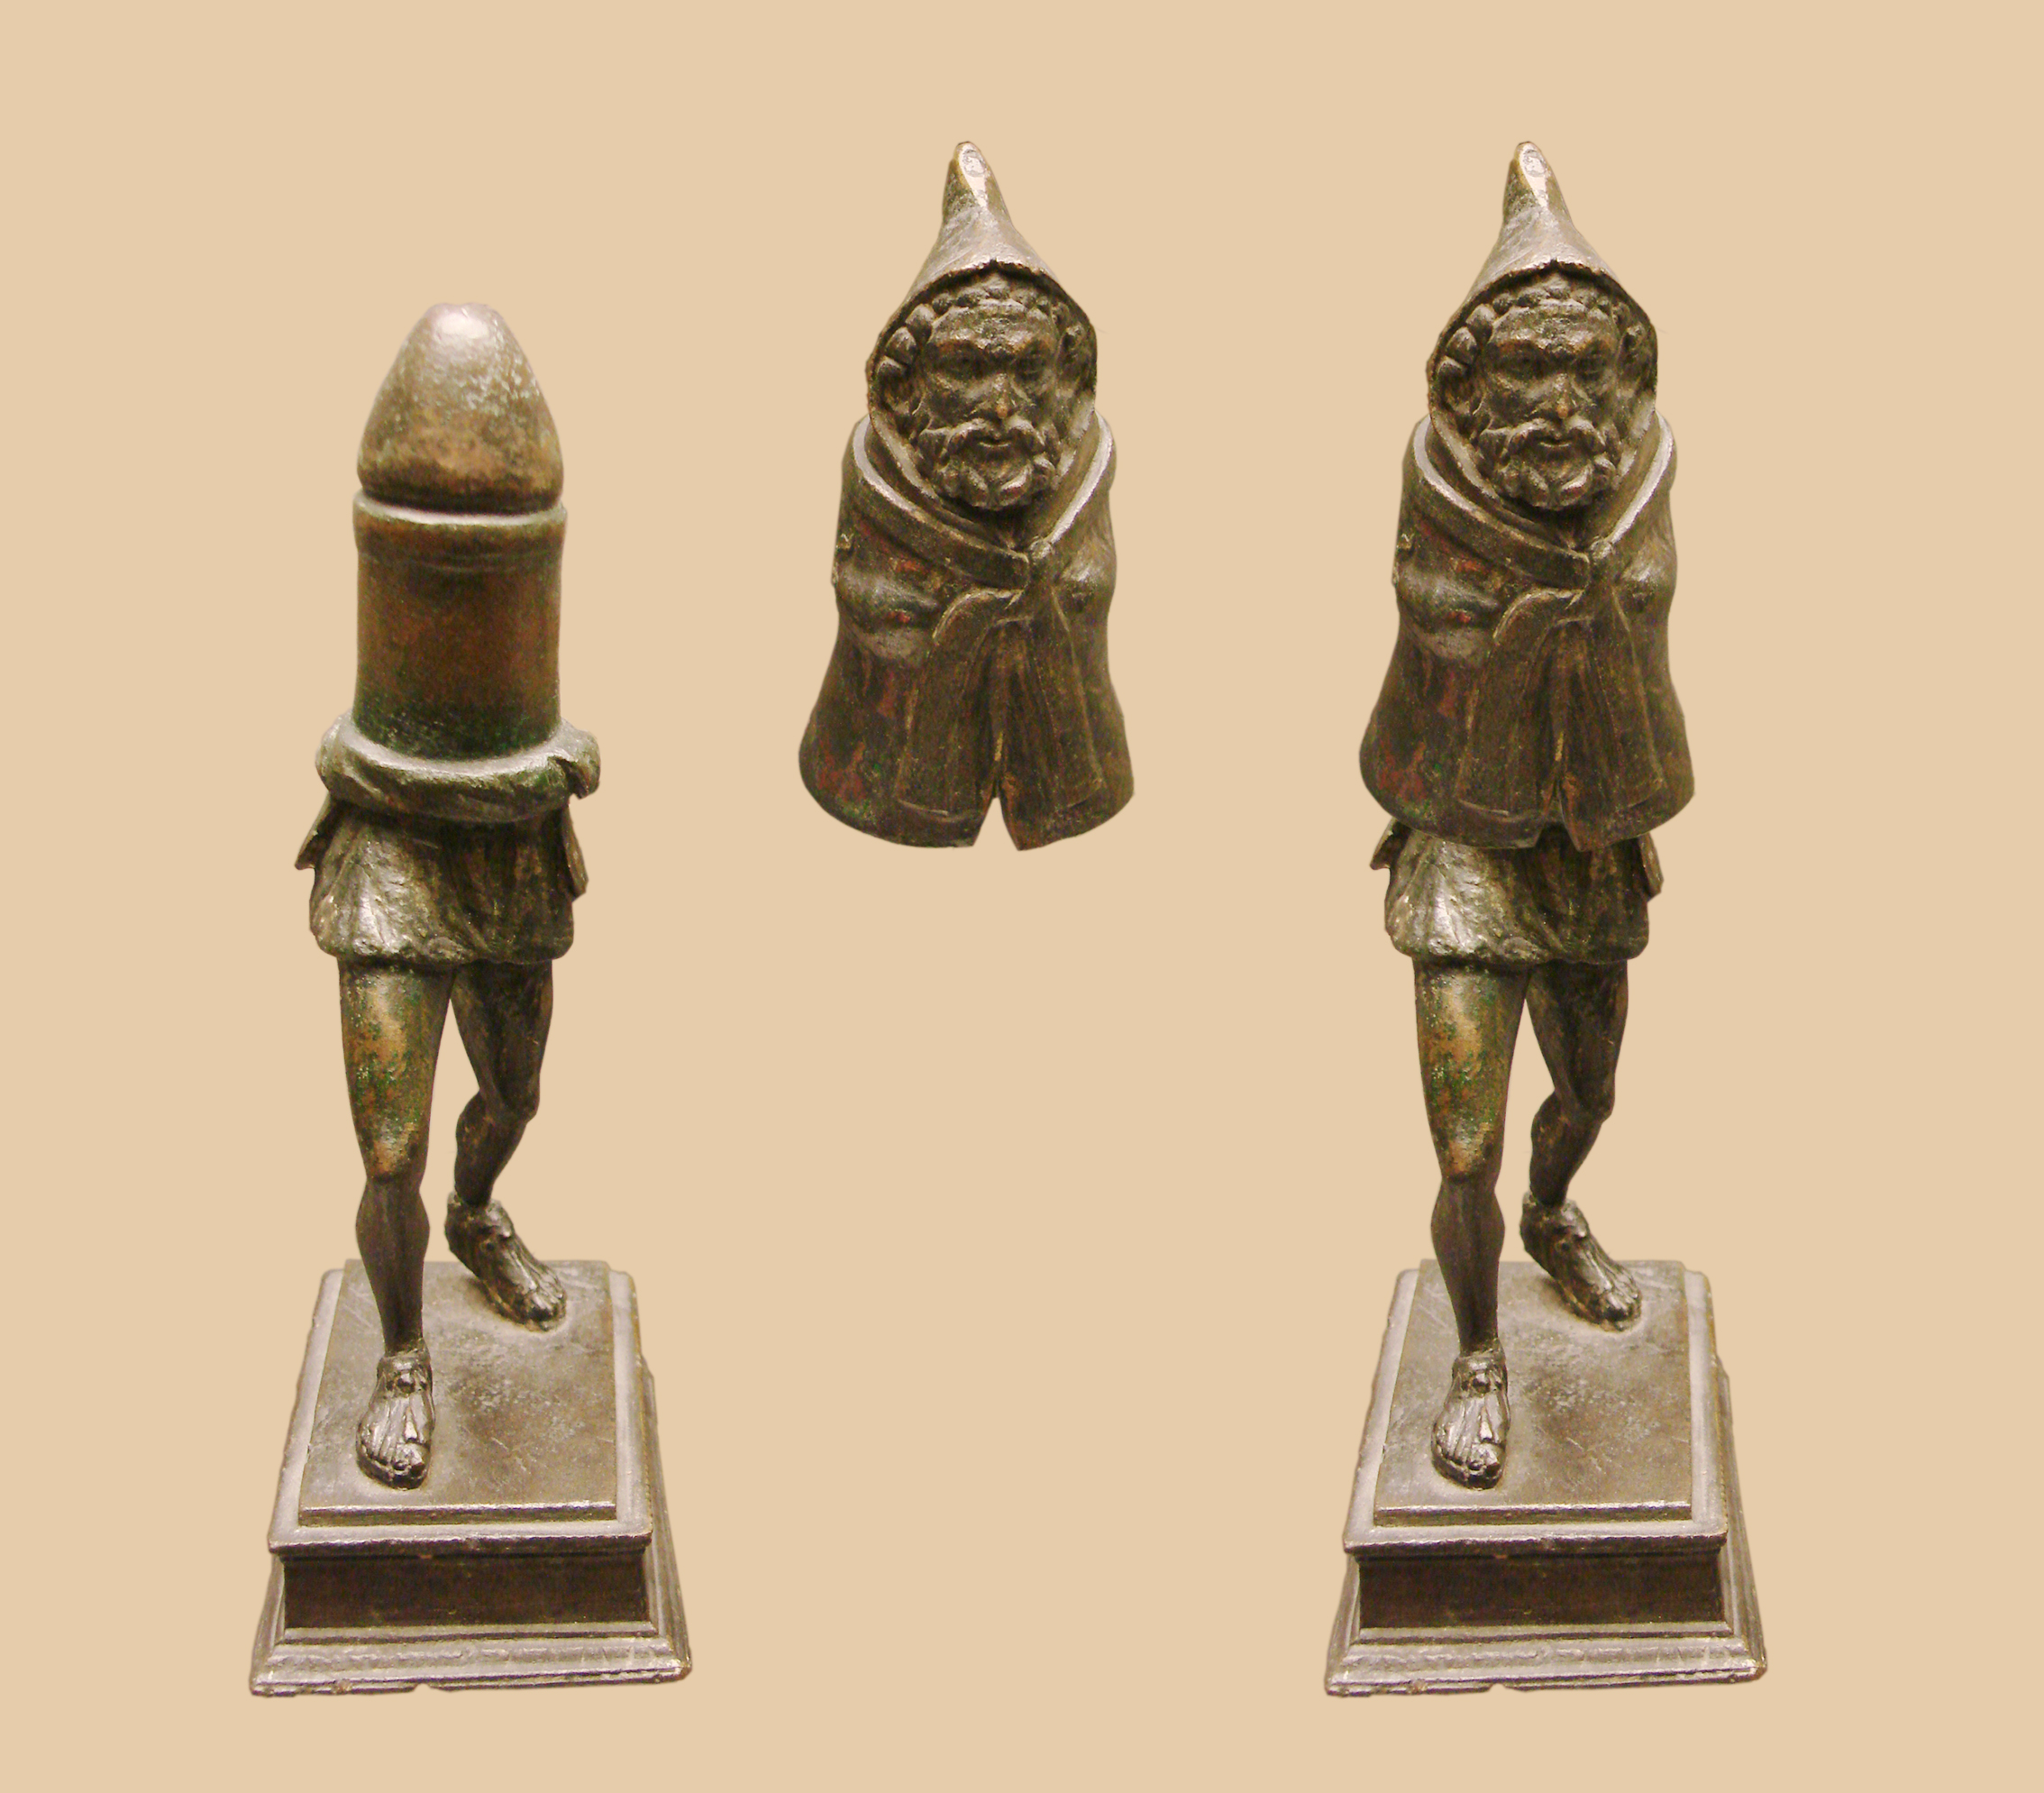 Gallo-Roman genius cucullati disguising a phallus from Picardy, northern France. From Wikimedia Commons